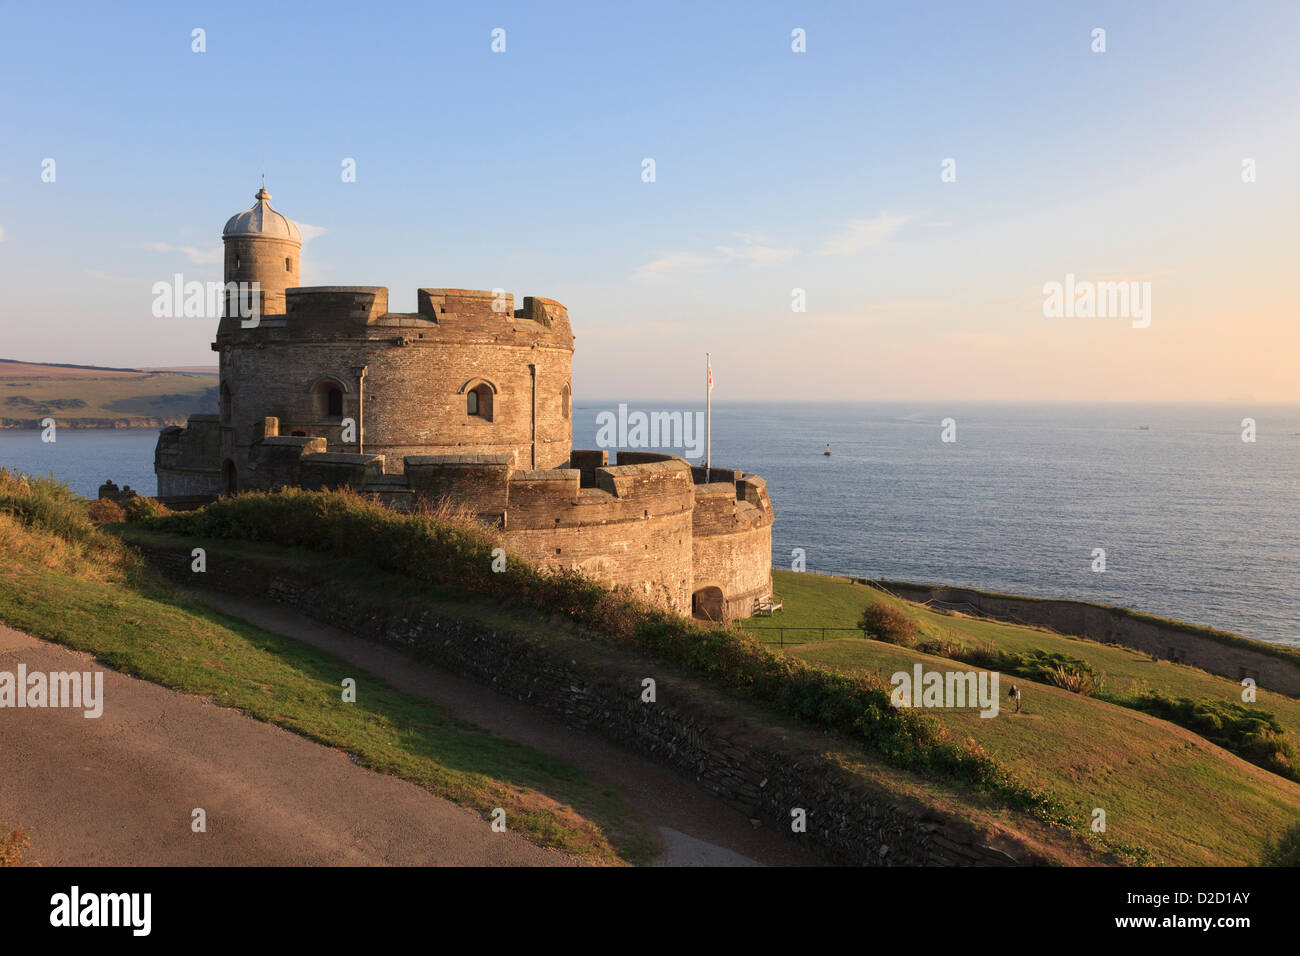 View of Tudor castle overlooking Falmouth Bay in evening sunshine on Cornish south coast at St Mawes Cornwall England - Stock Image